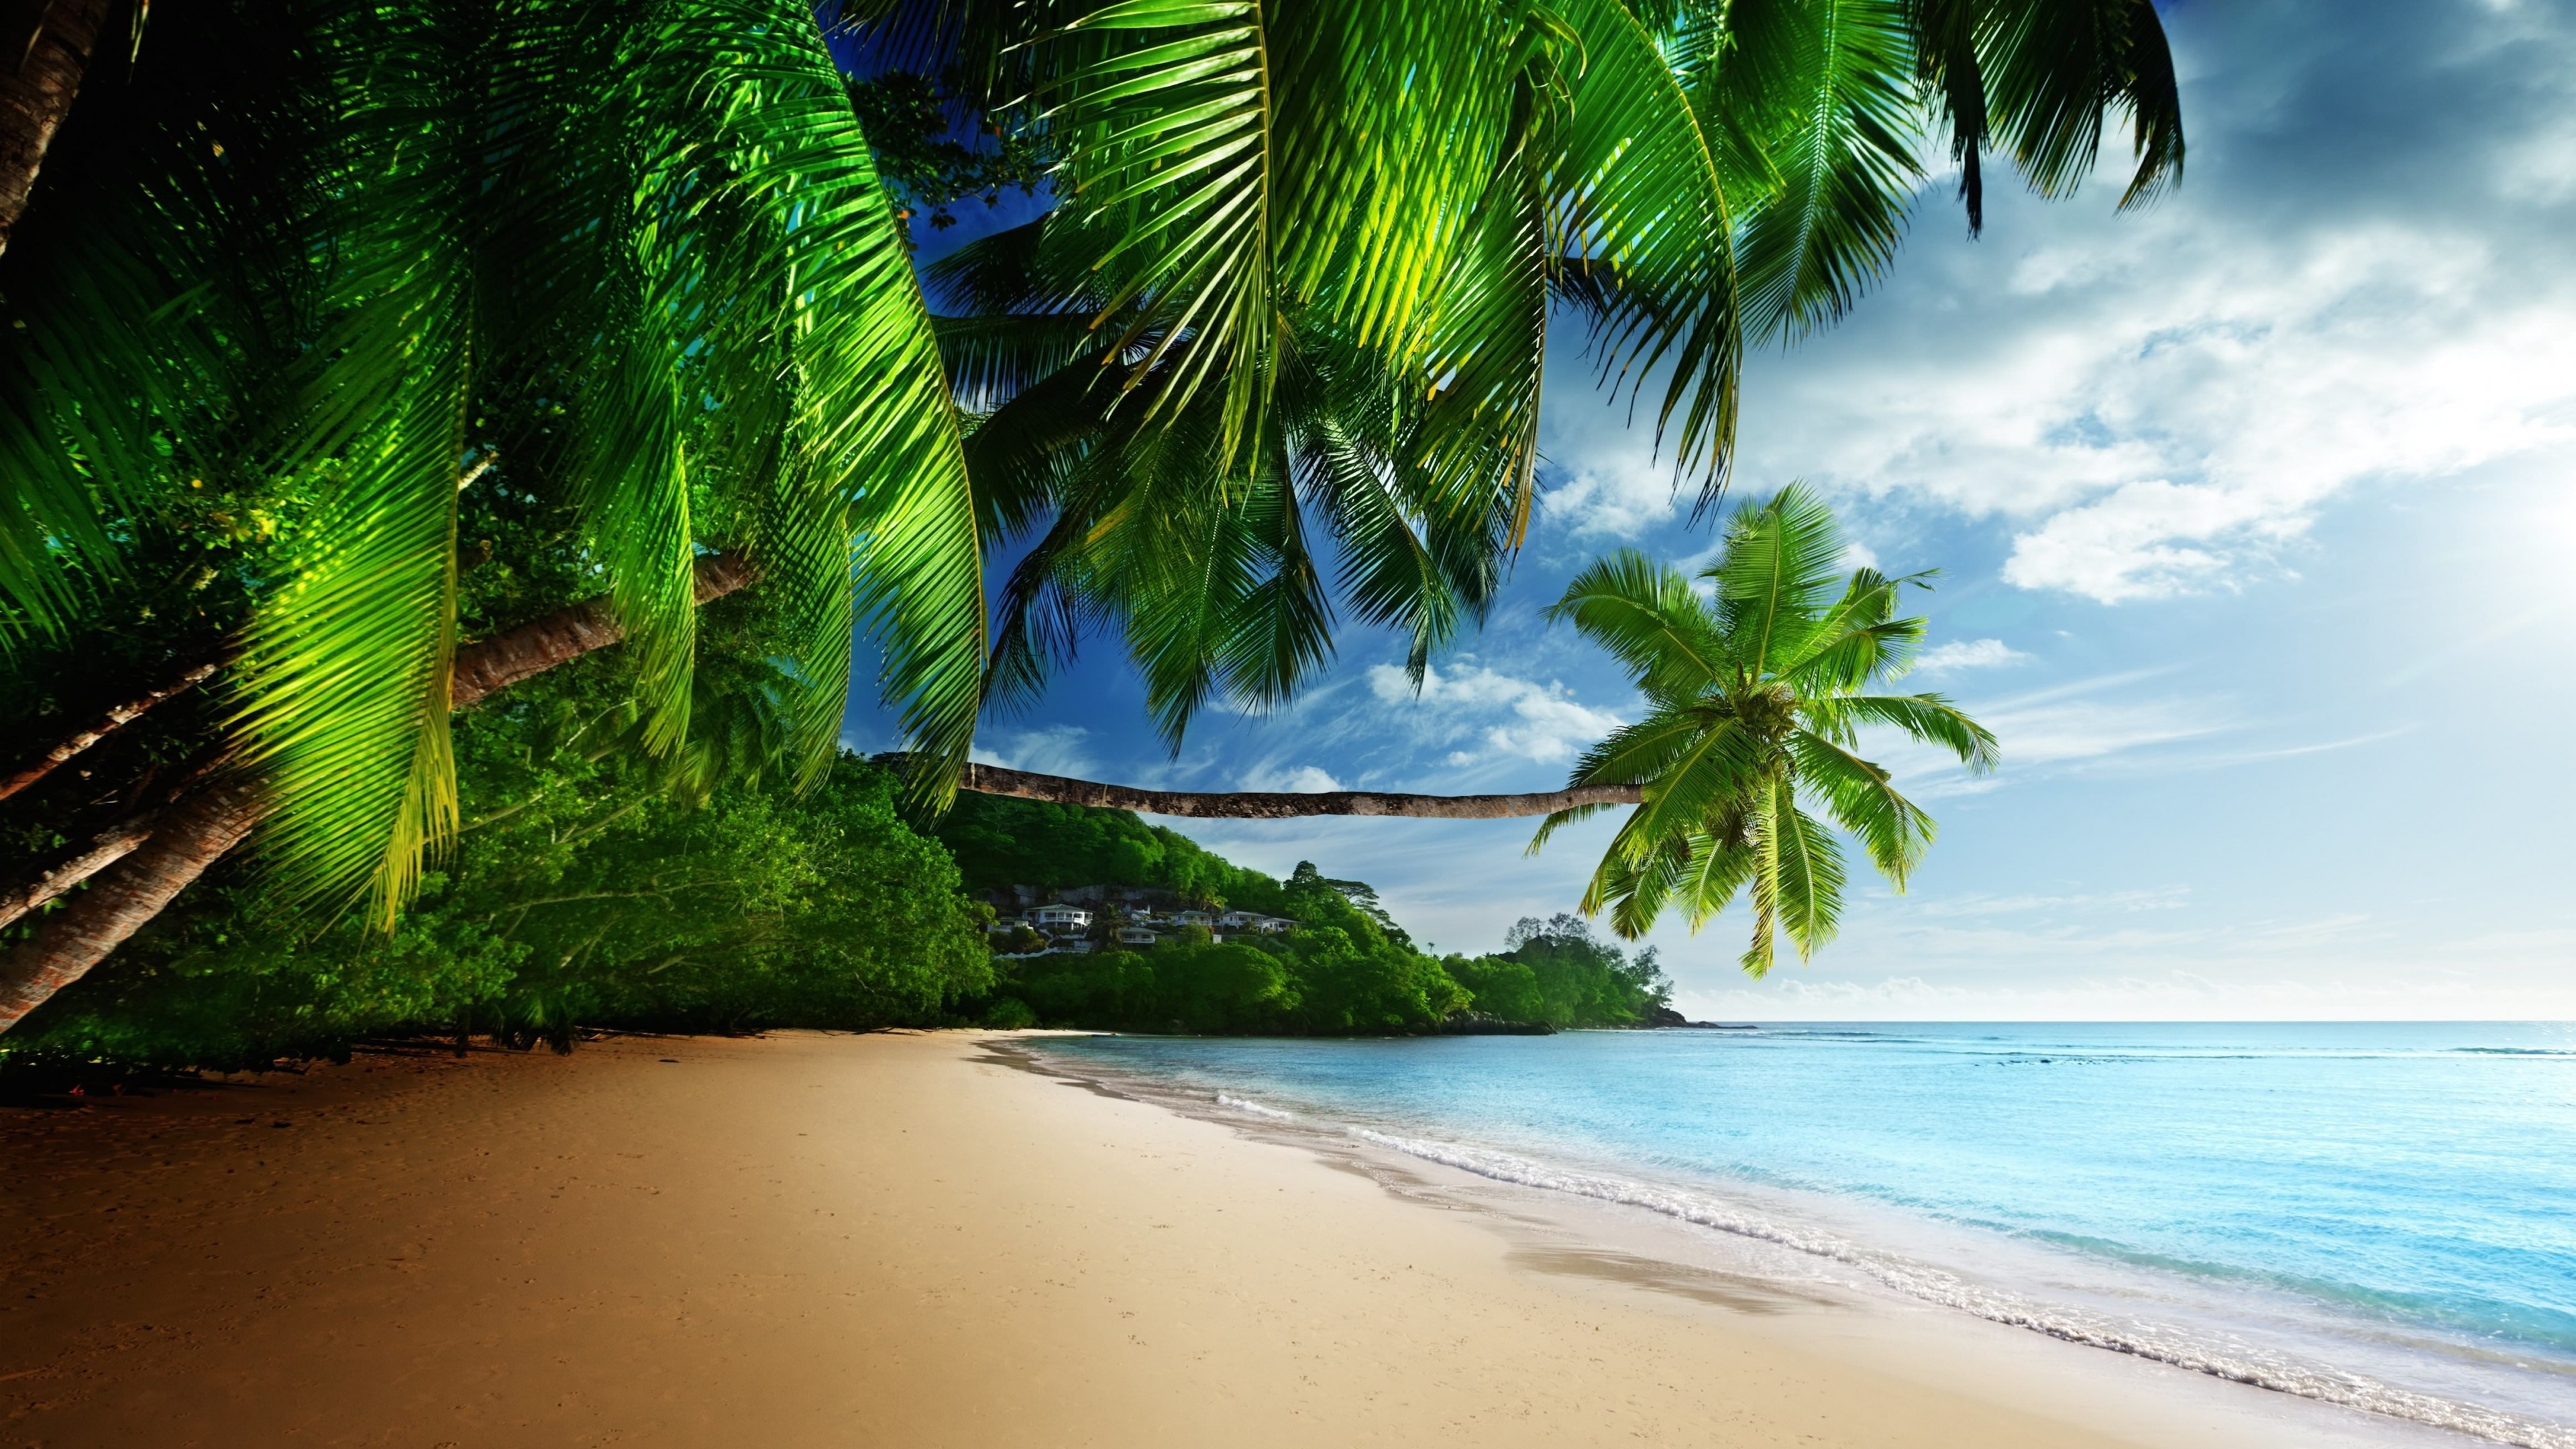 Tropical Paradise Beach Wallpaper for Desktop 4K 3840x2160